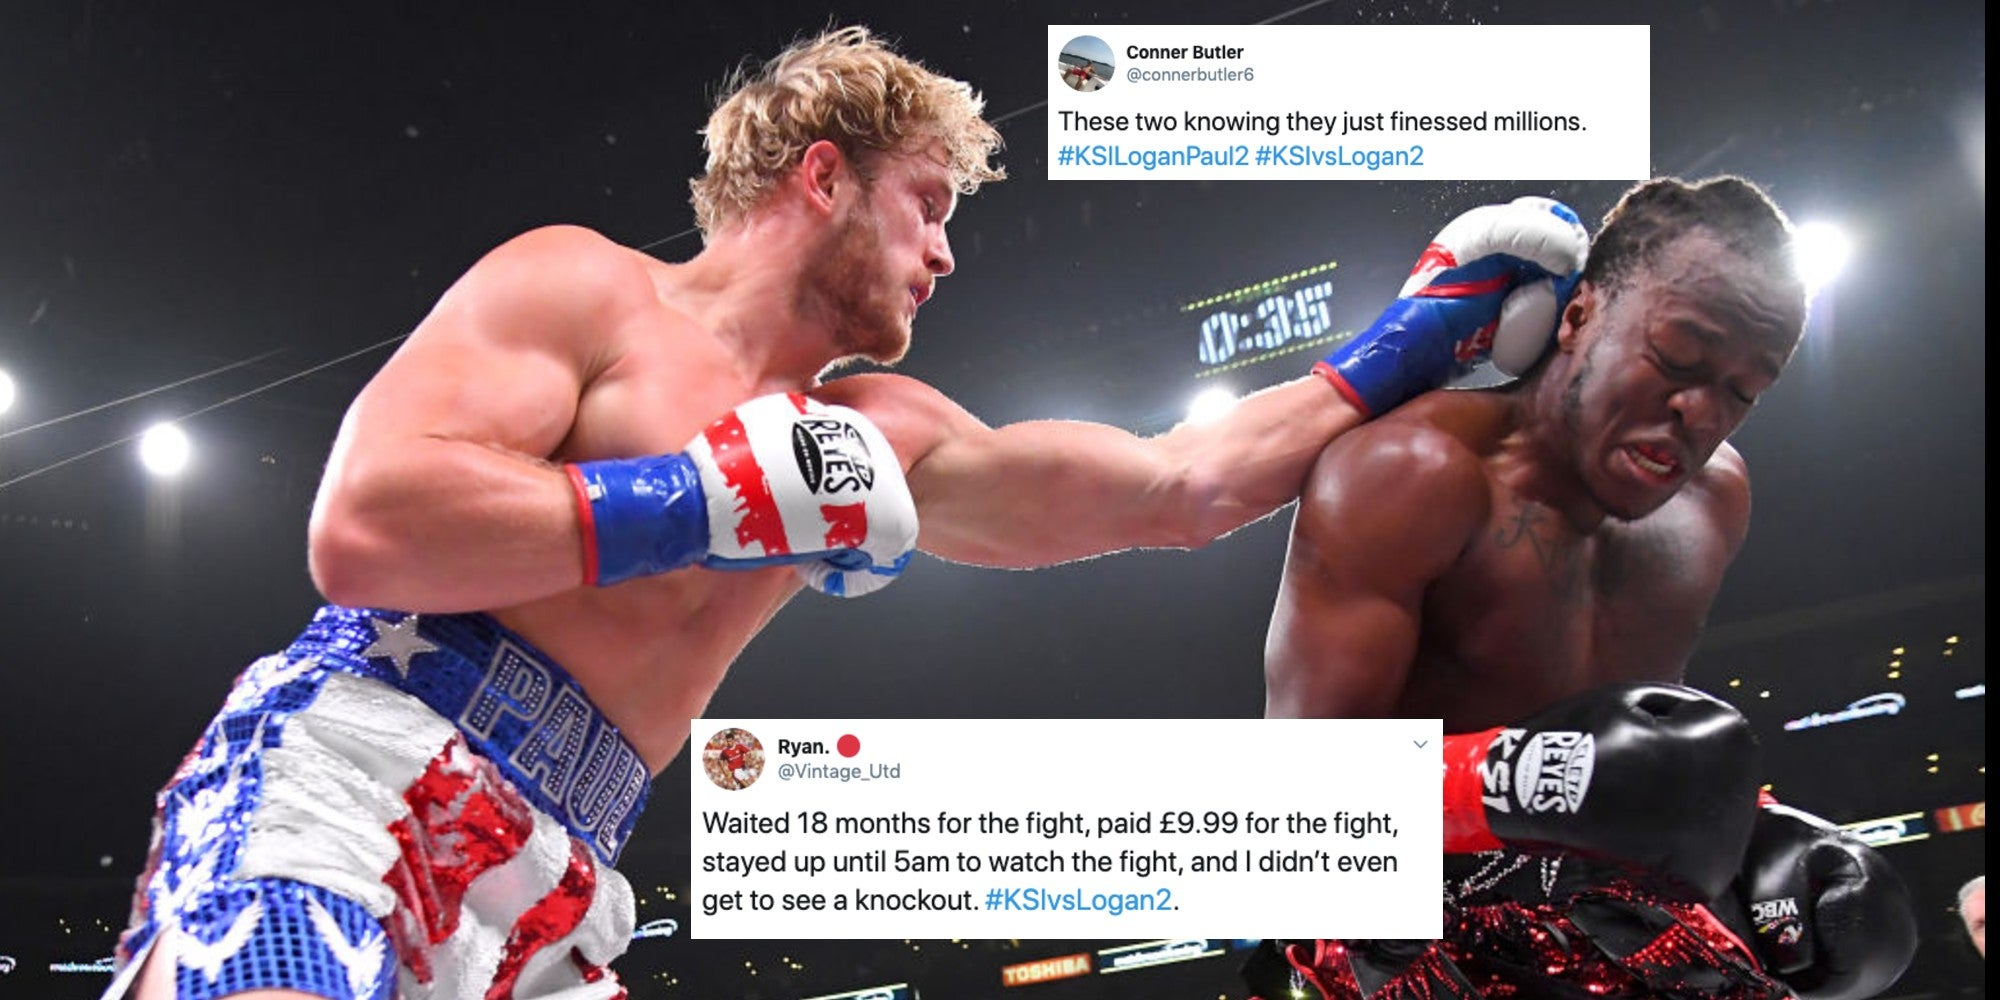 Ksi Vs Logan Paul 2 16 Of The Funniest Tweets New Messages Indy100